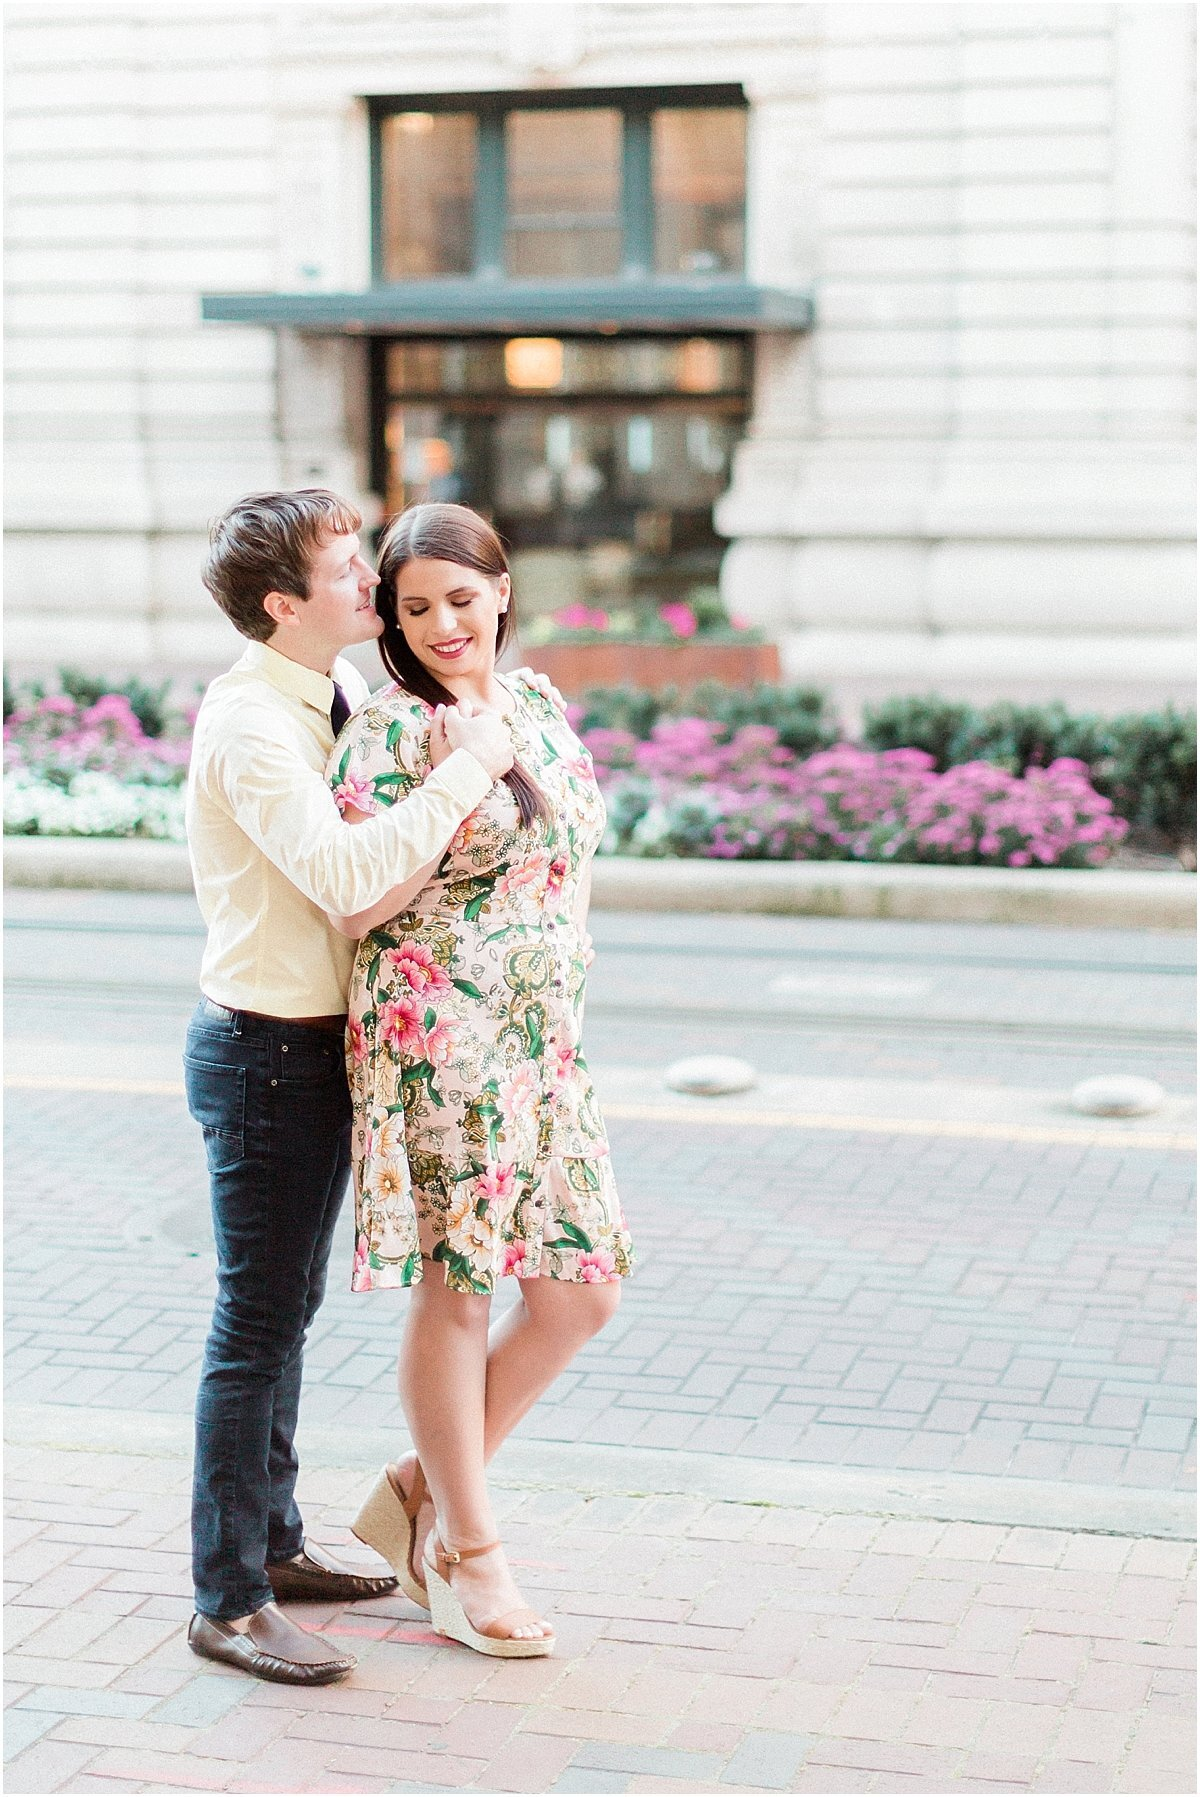 Eric-and-Christina-Downtown-Houston-Engagement-Session-28